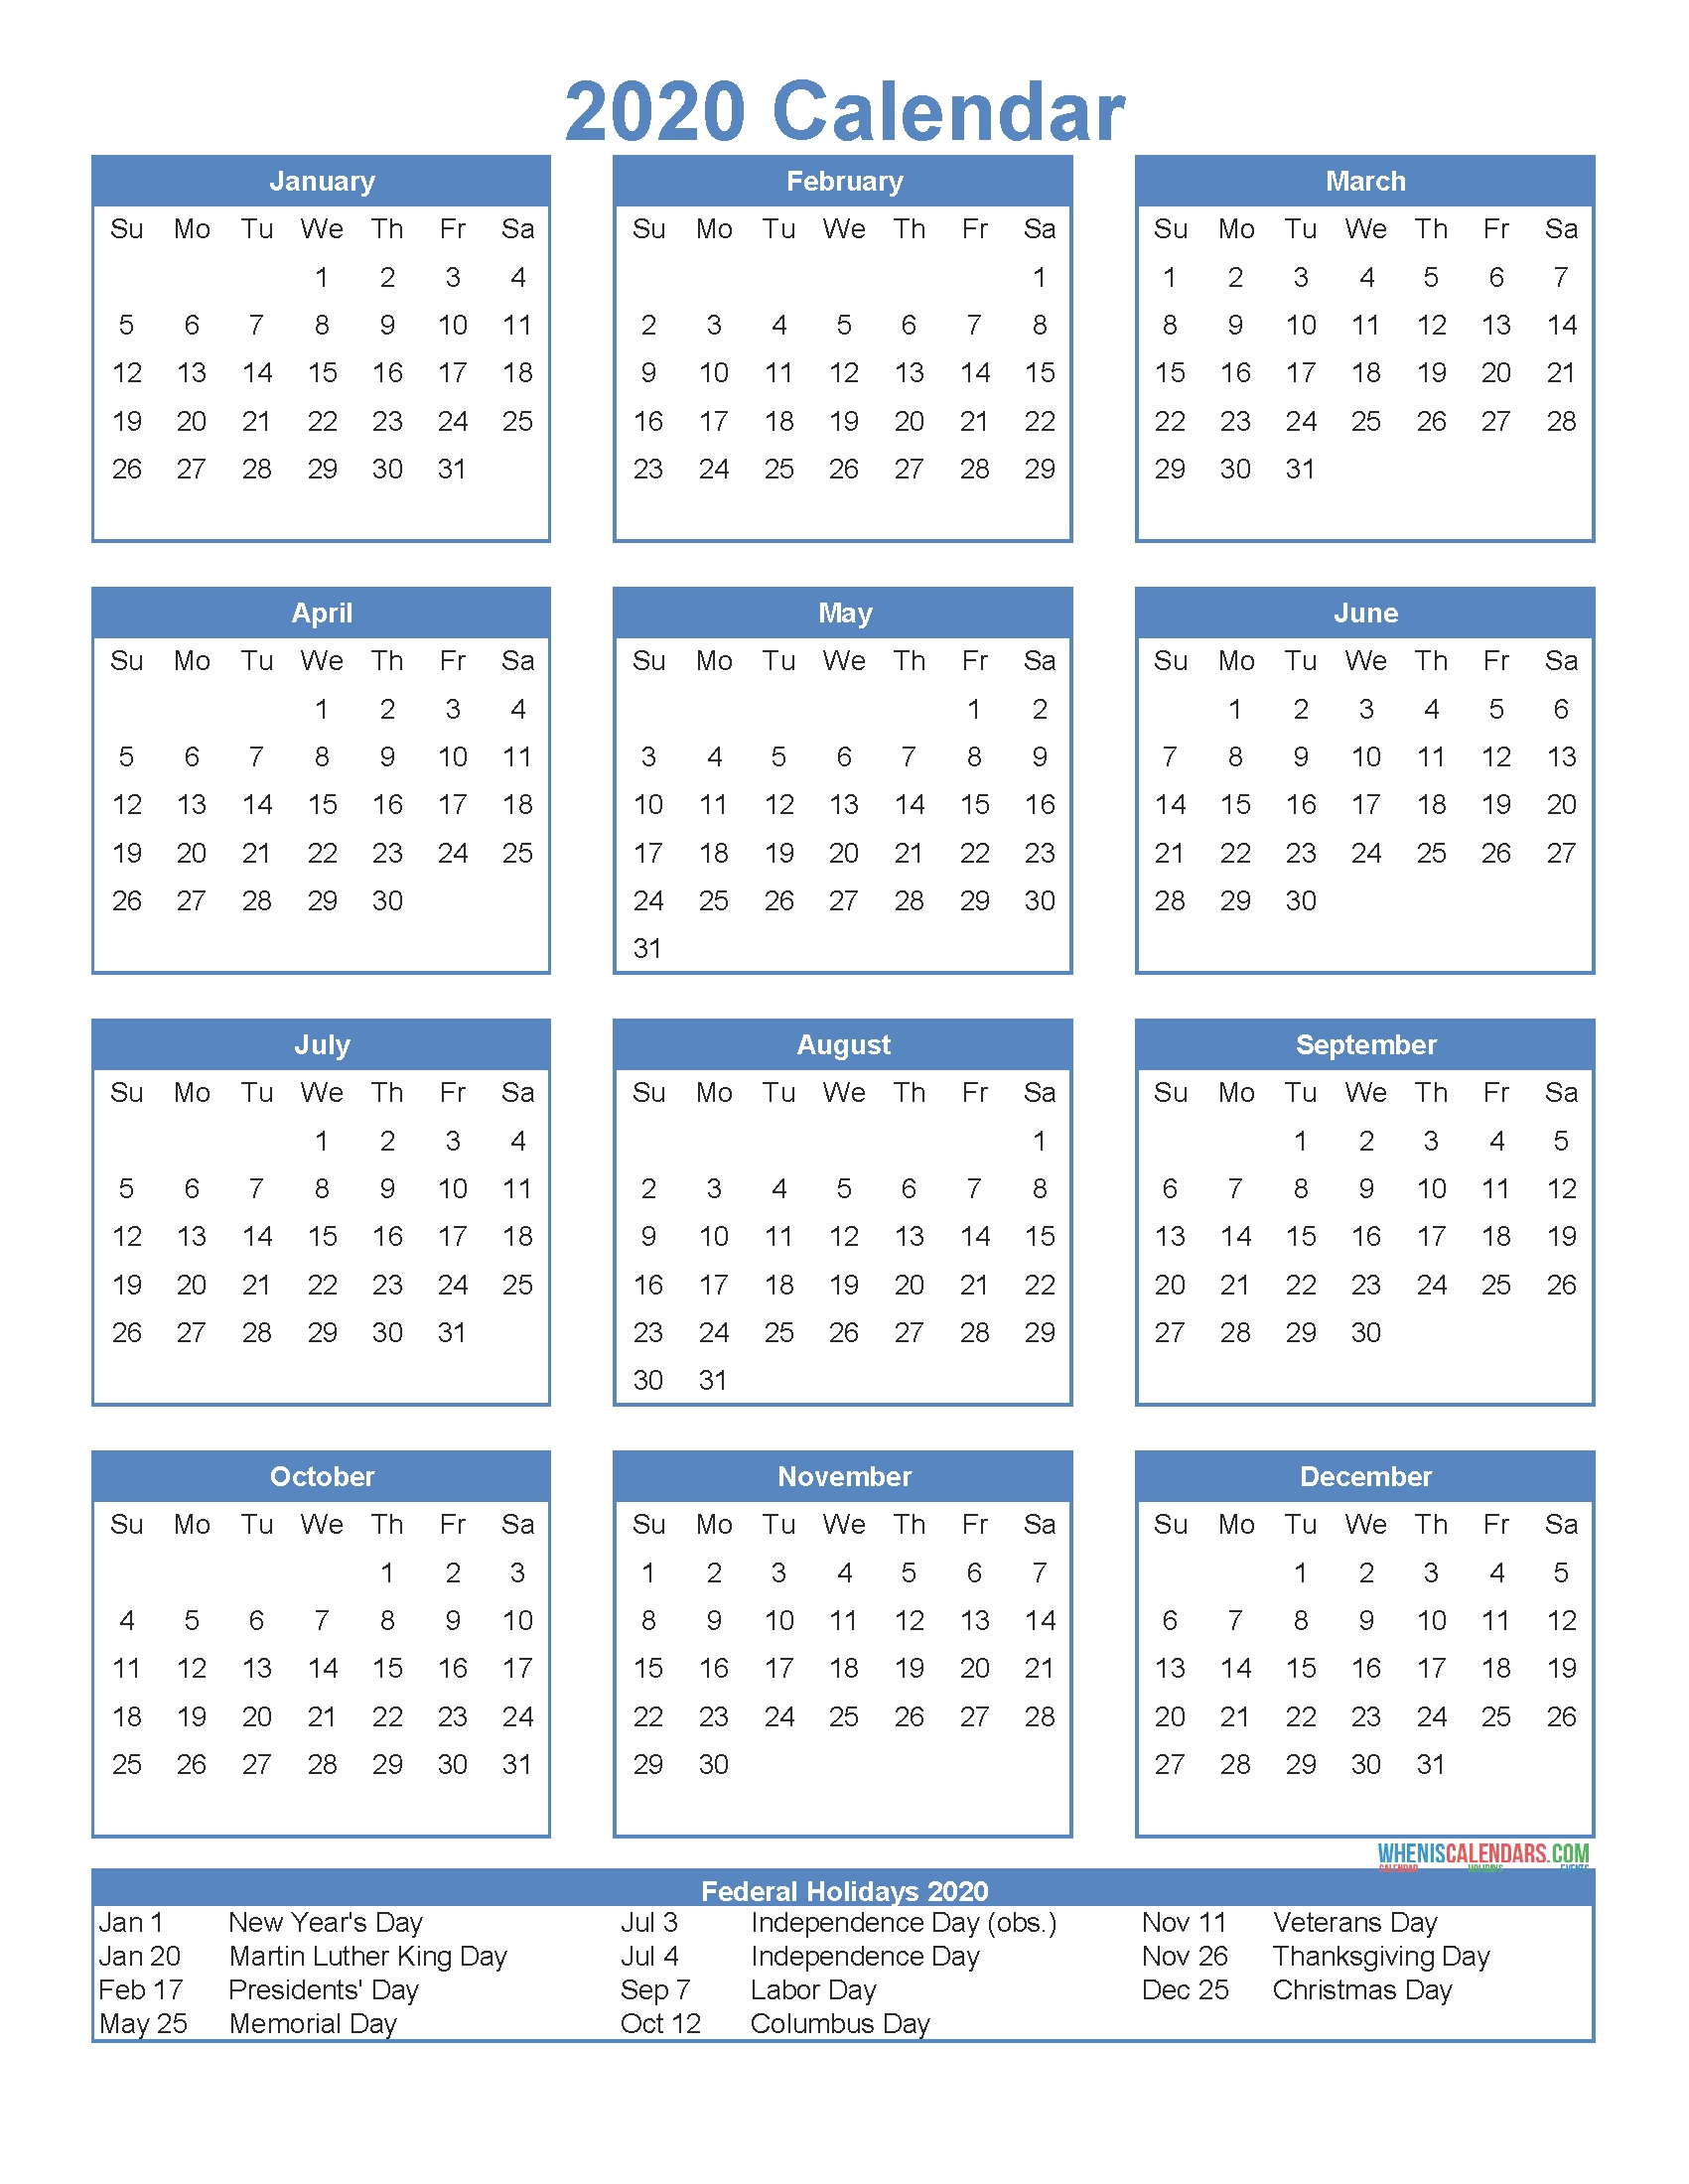 12 Month Calendar On One Page 2020 Printable Pdf, Excel with regard to Year At A Glance 2020 Png